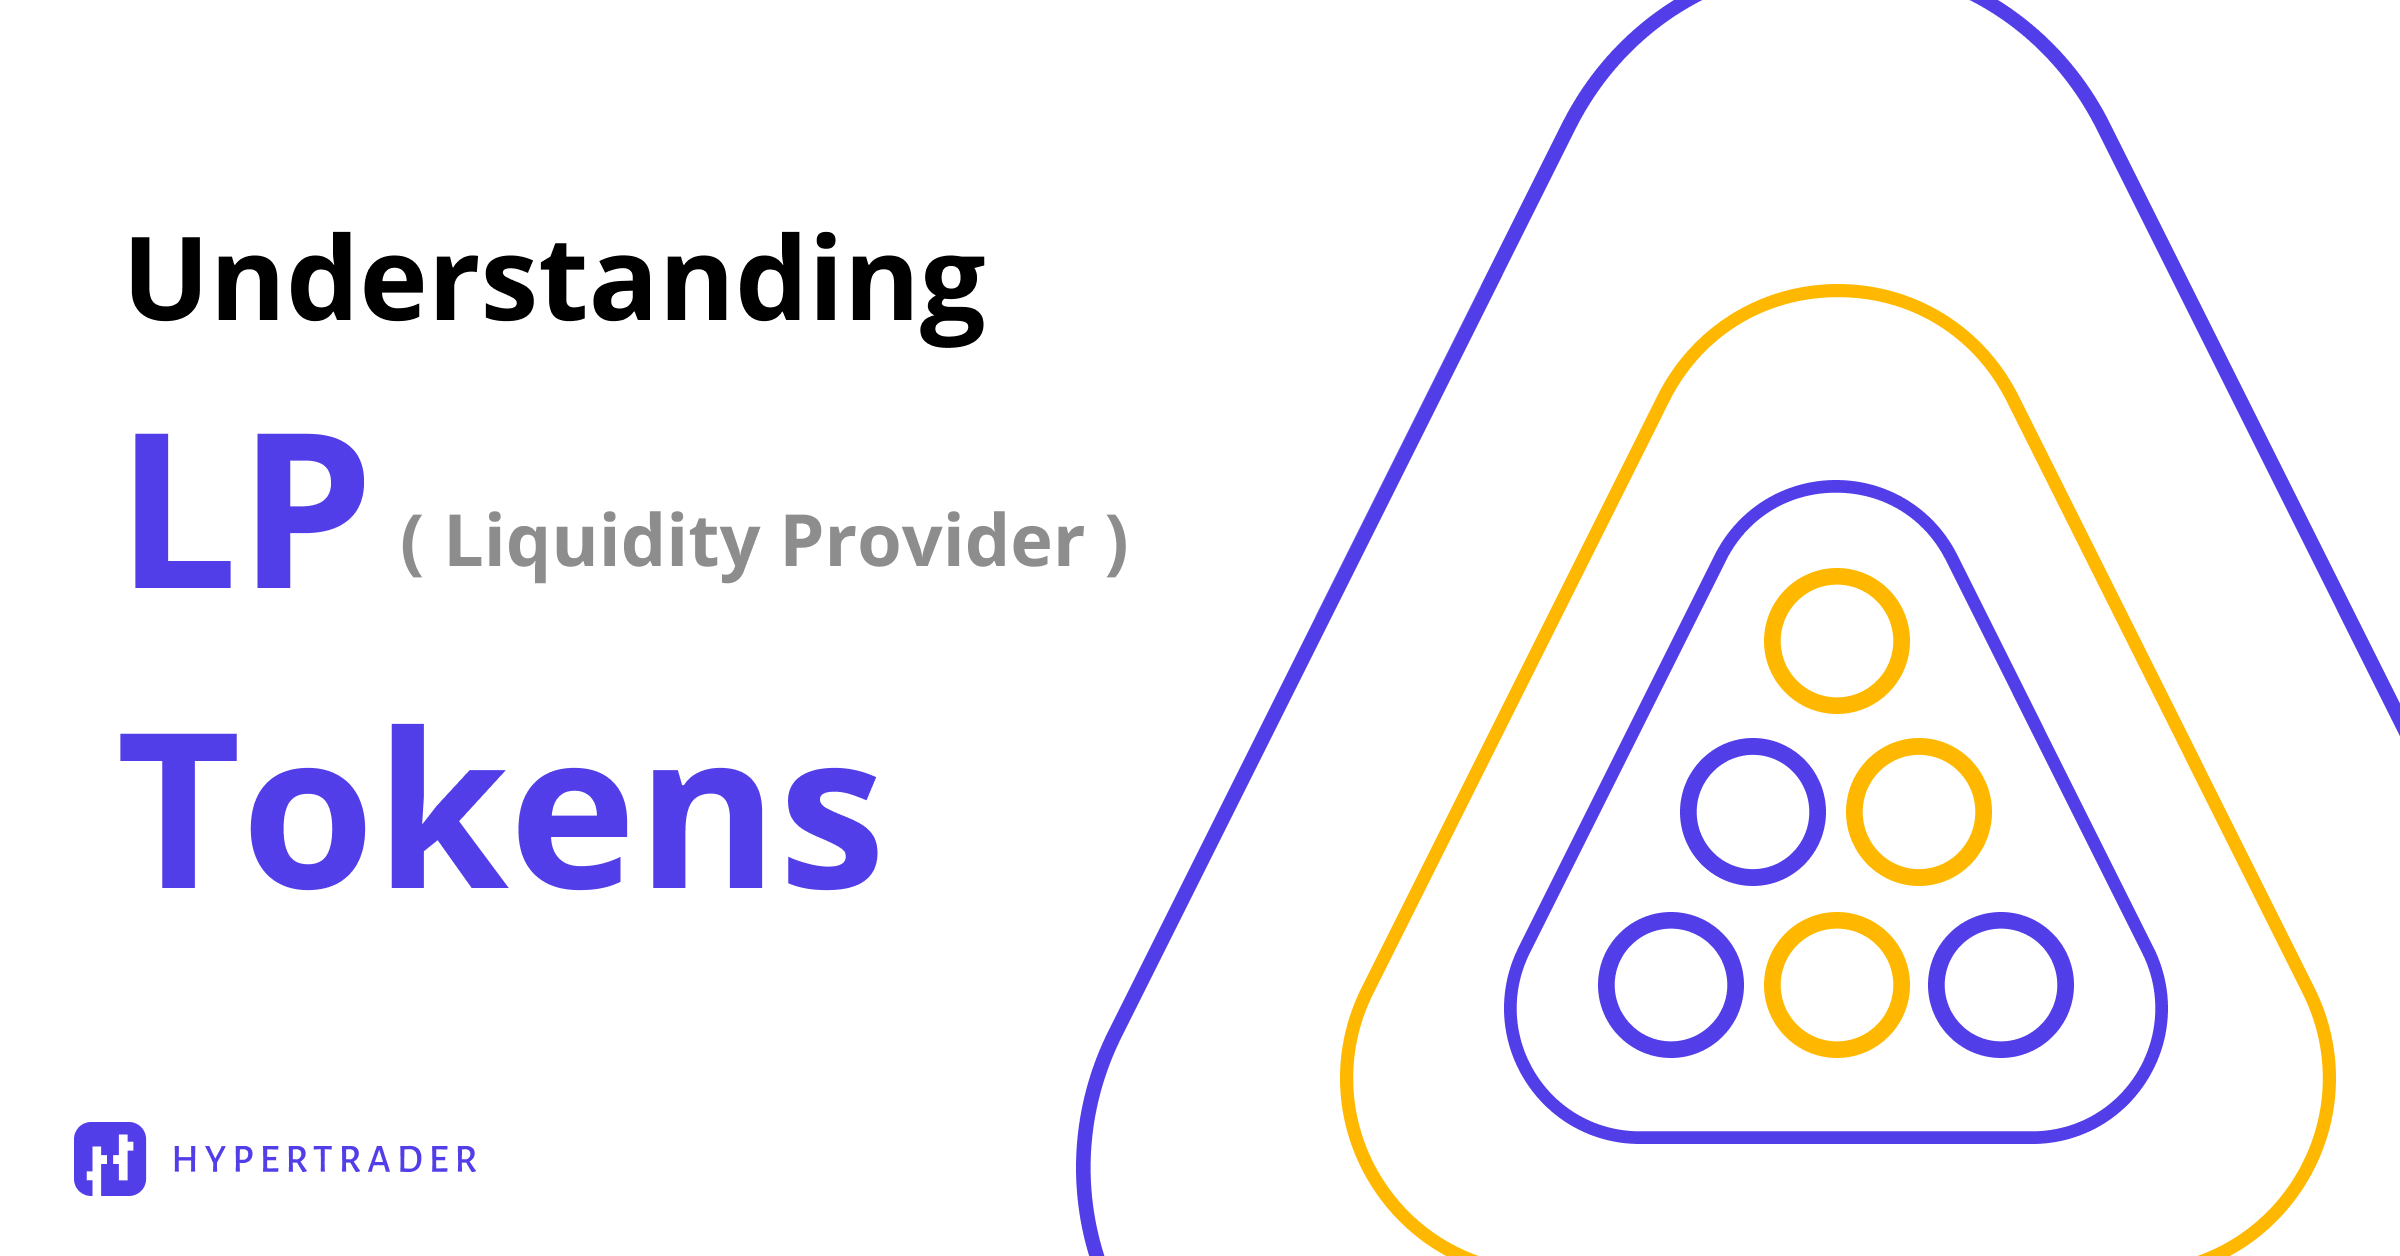 What are LP Tokens?